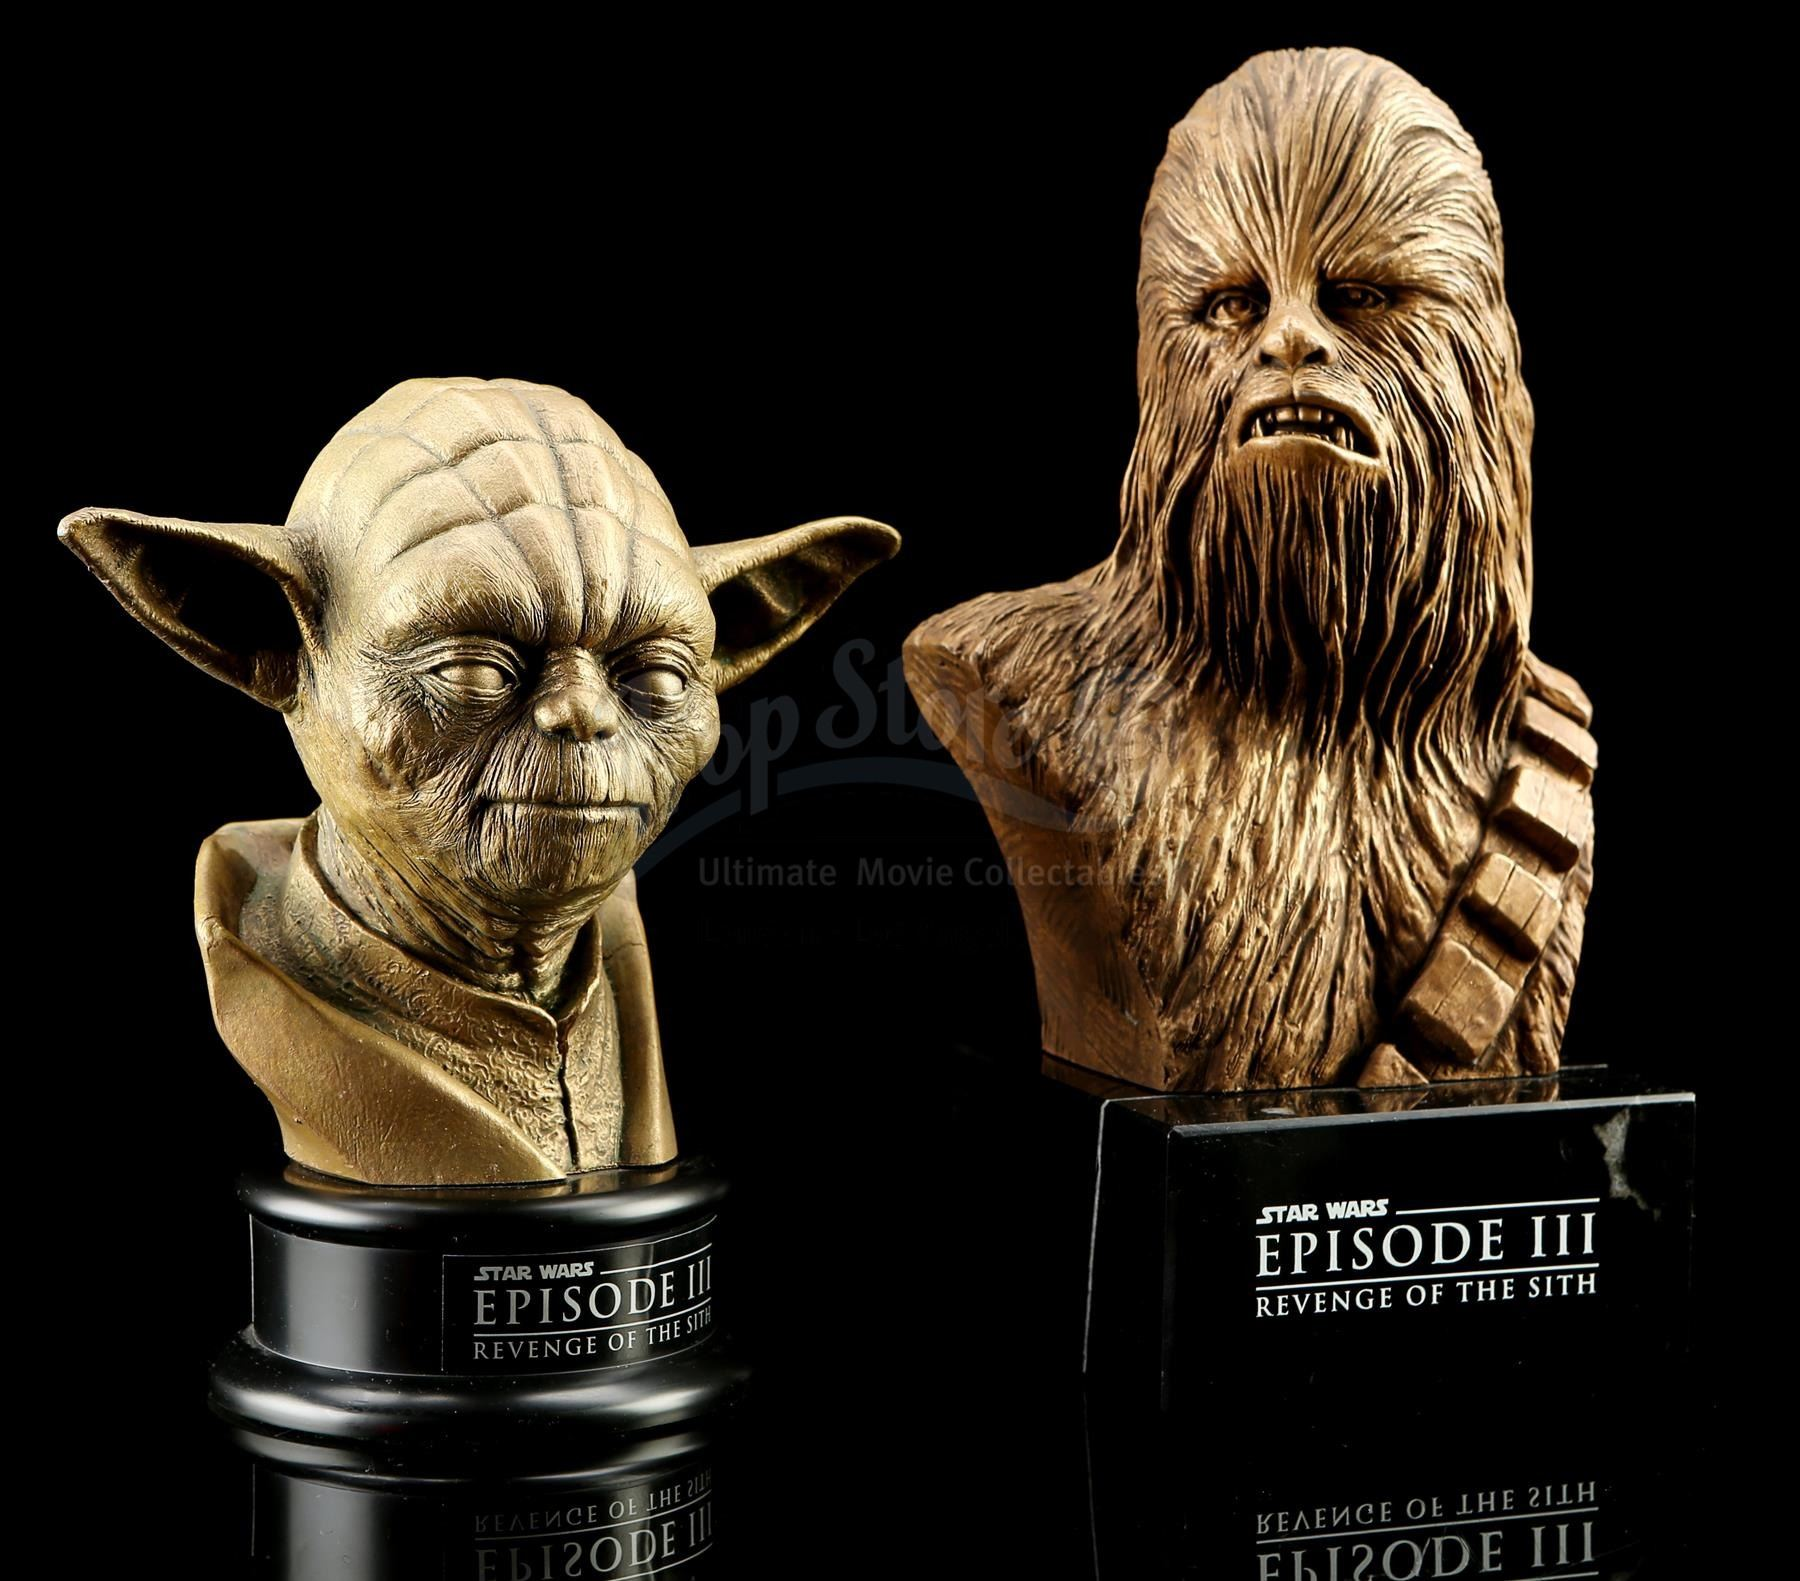 Star Wars Revenge Of The Sith 2005 Yoda And Chewbacca Statue Crew Gifts